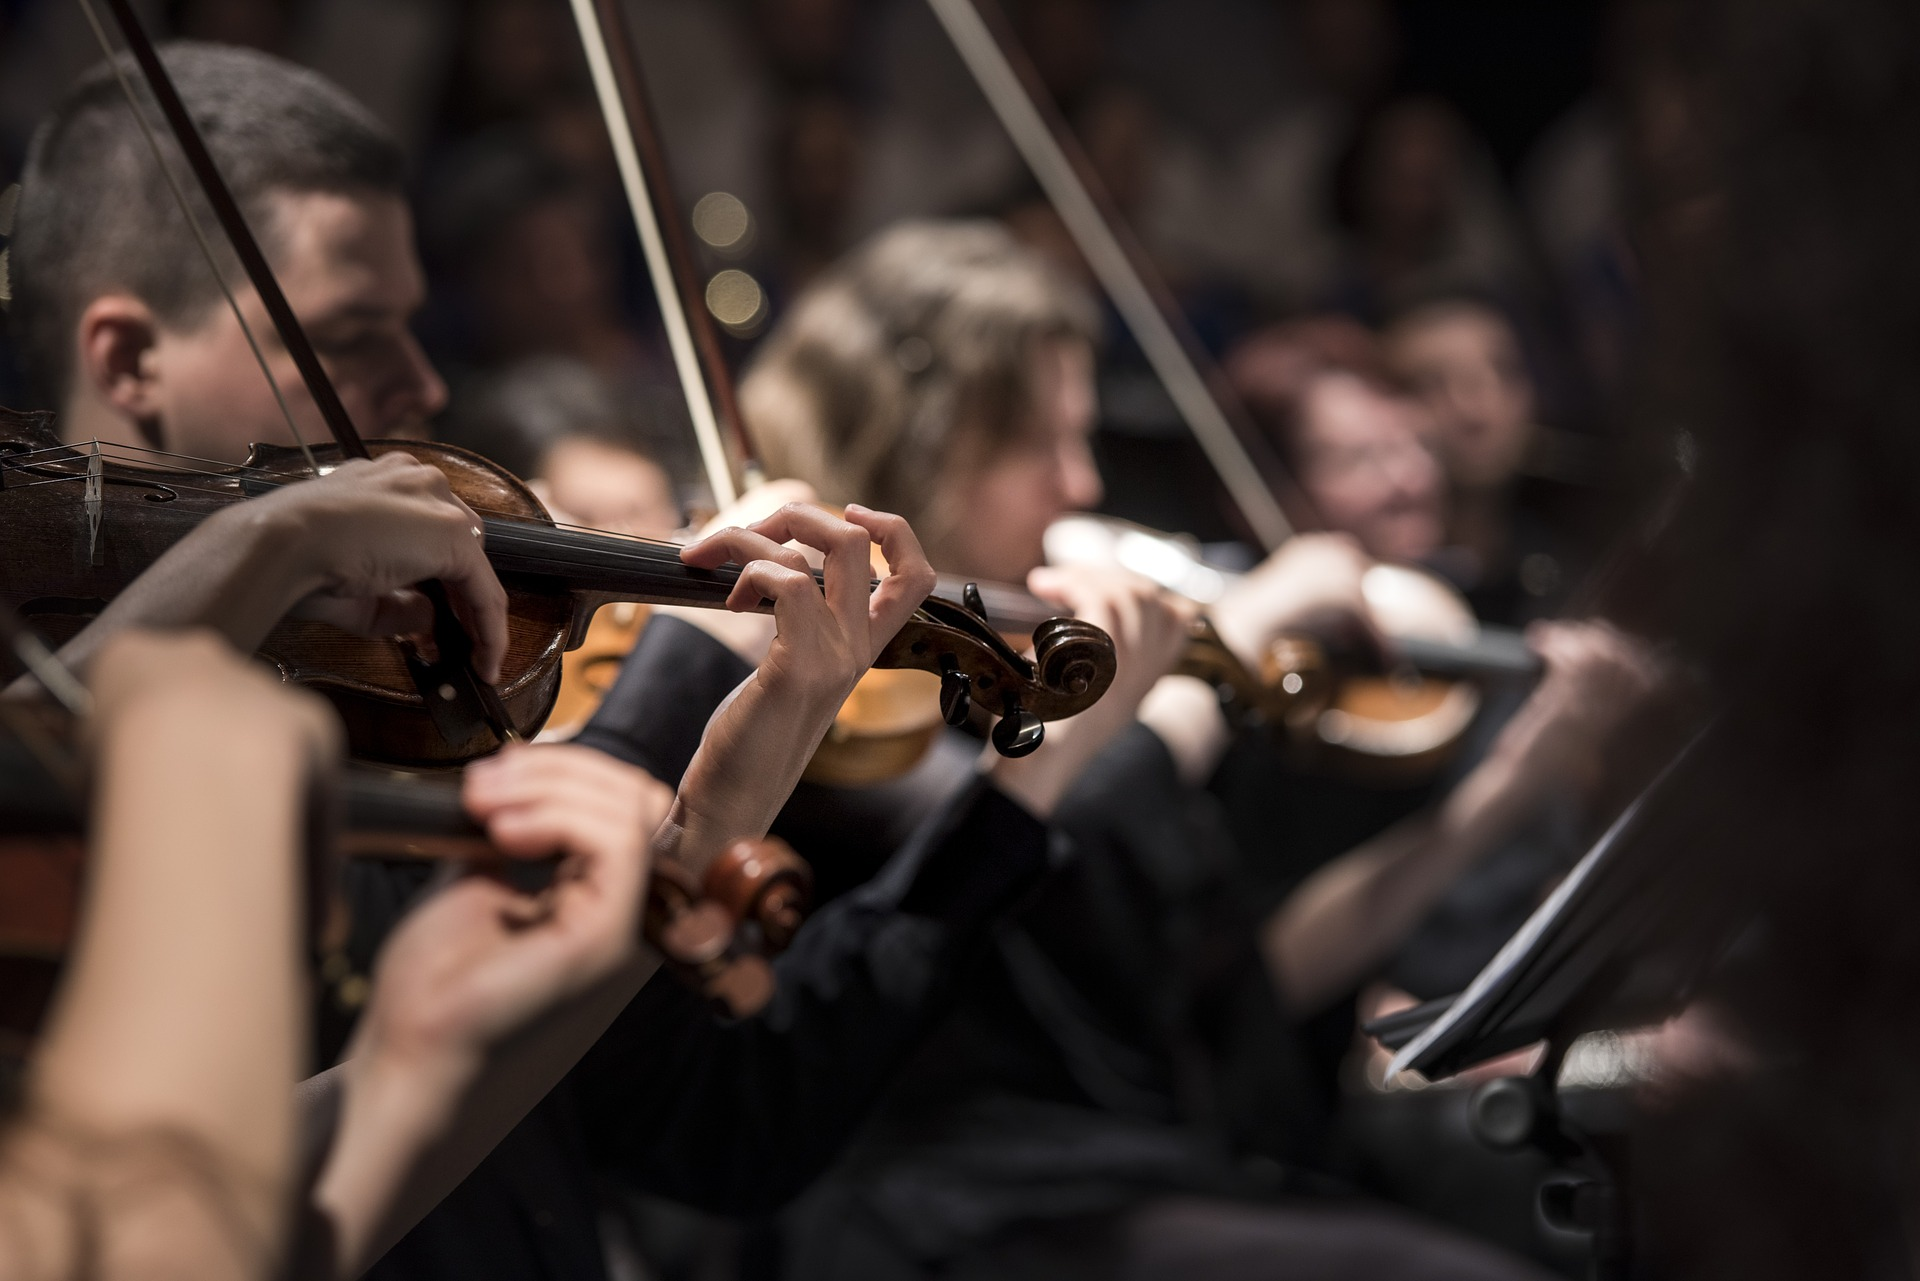 How to enjoy a classical music concert - a guide for the casual listener